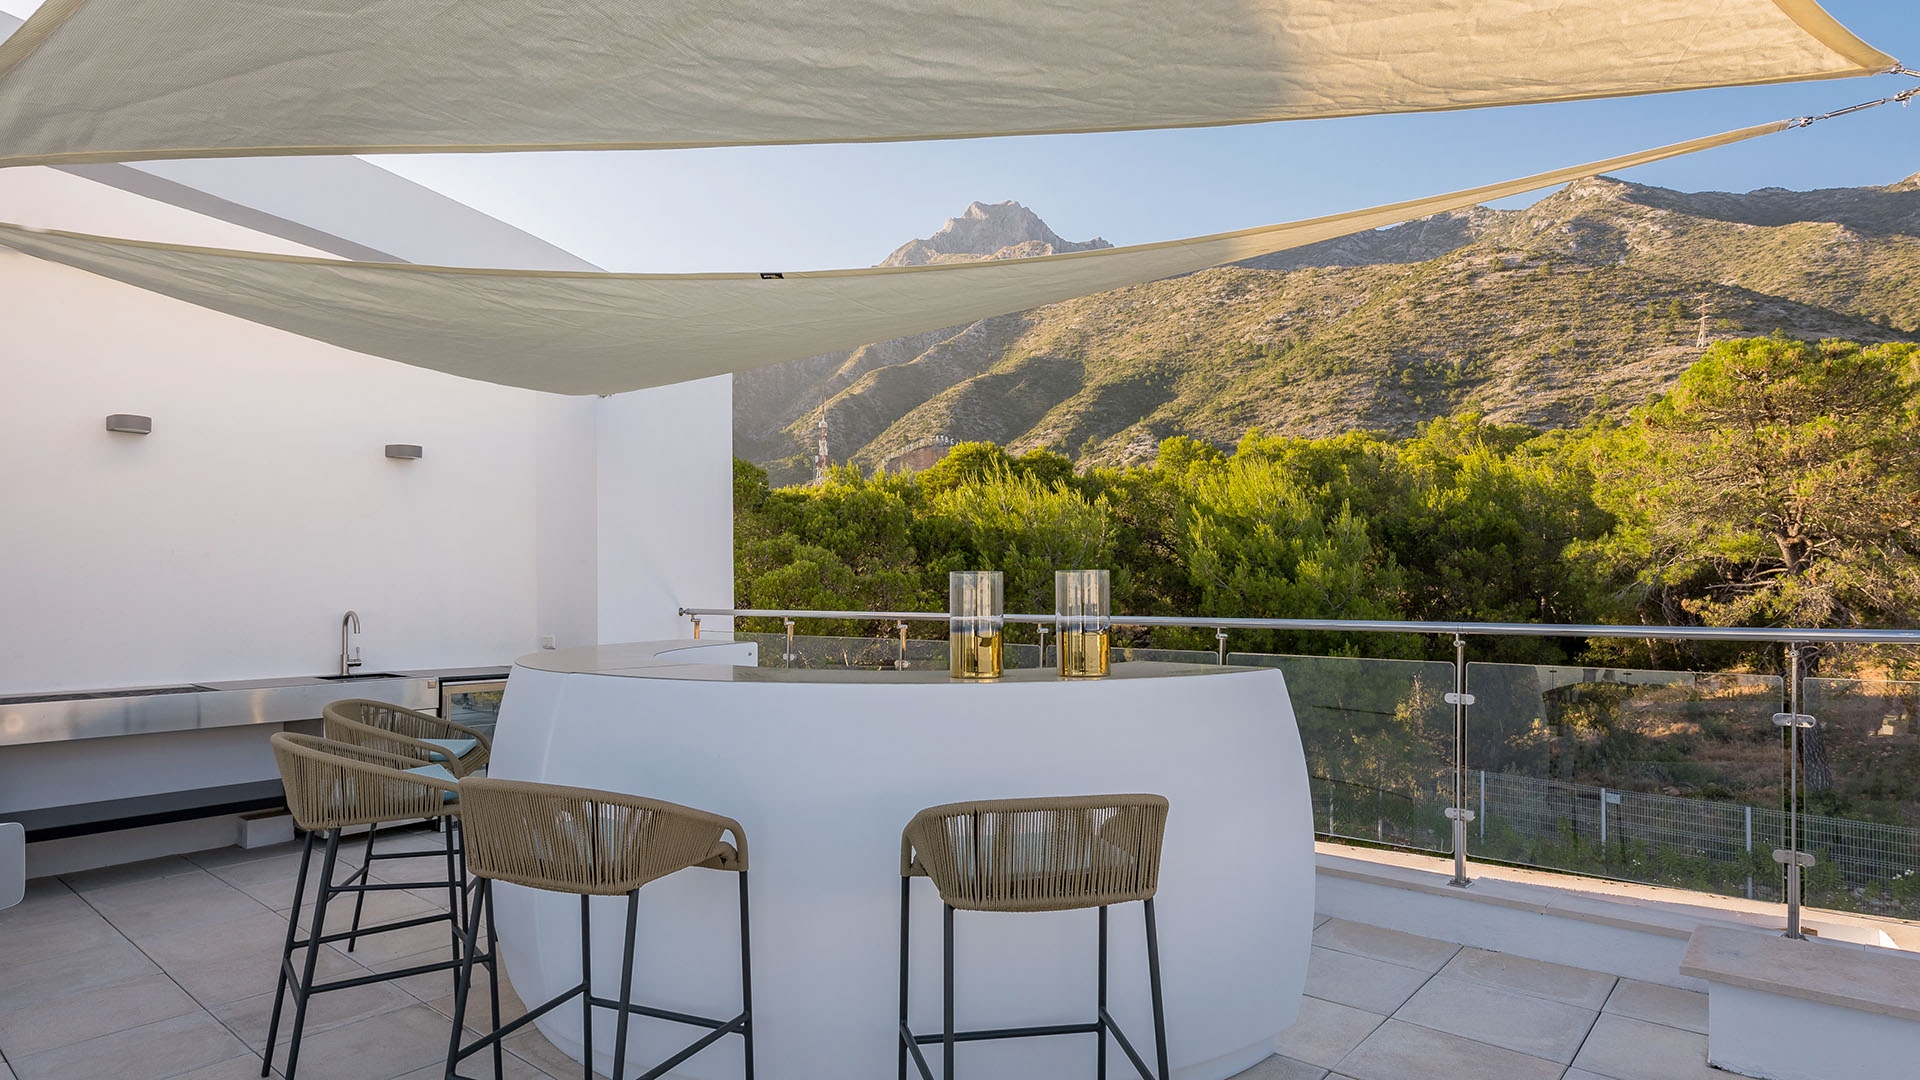 Altius 5: Magnificent house in Marbella with breathtaking views